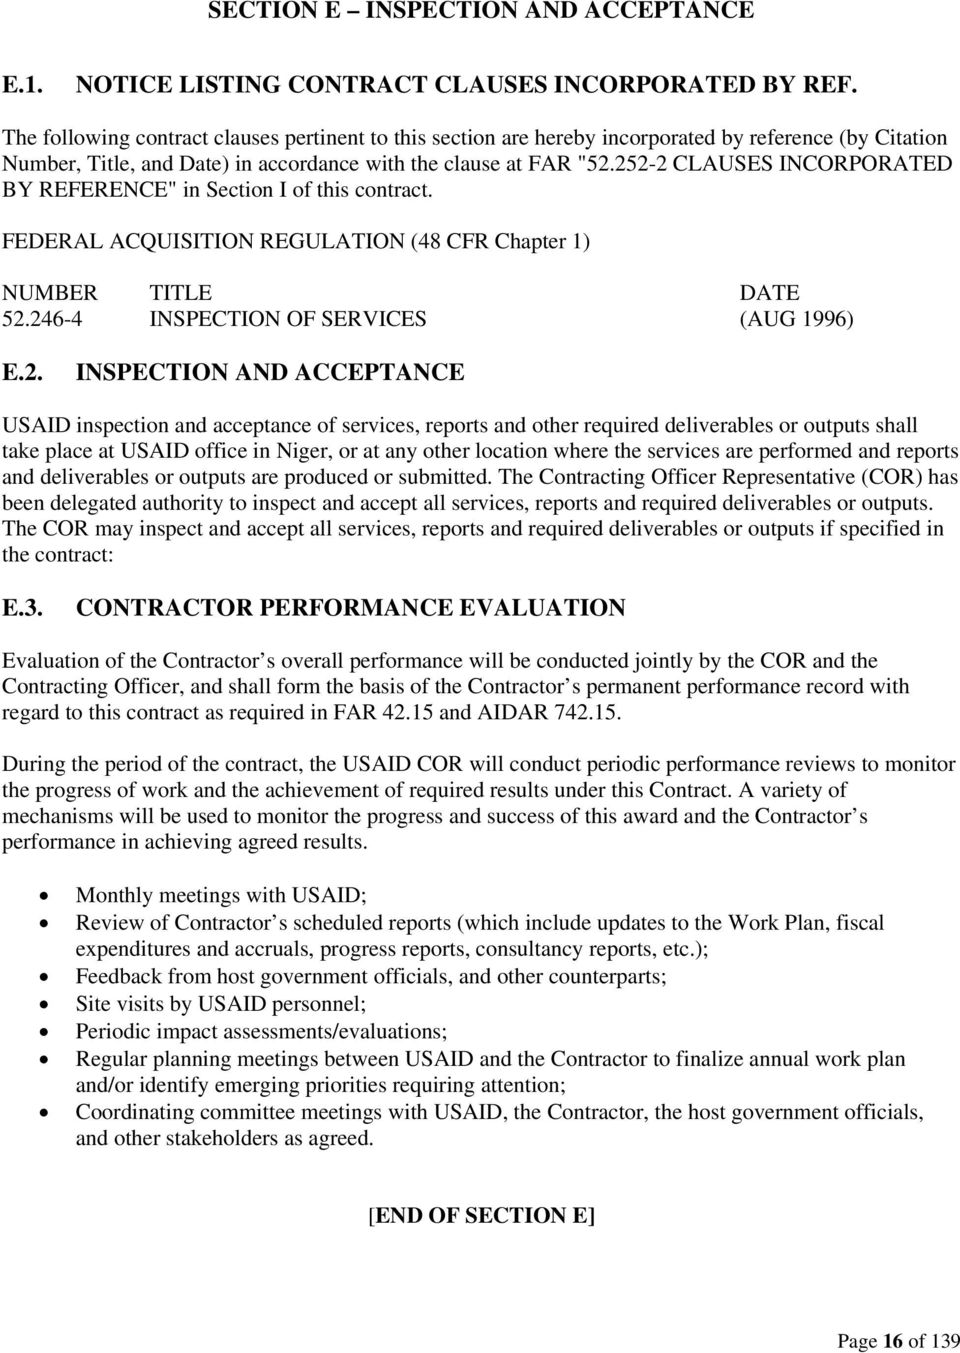 "252-2 CLAUSES INCORPORATED BY REFERENCE"" in Section I of this contract. FEDERAL ACQUISITION REGULATION (48 CFR Chapter 1) NUMBER TITLE DATE 52.246-4 INSPECTION OF SERVICES (AUG 1996) E.2. INSPECTION"